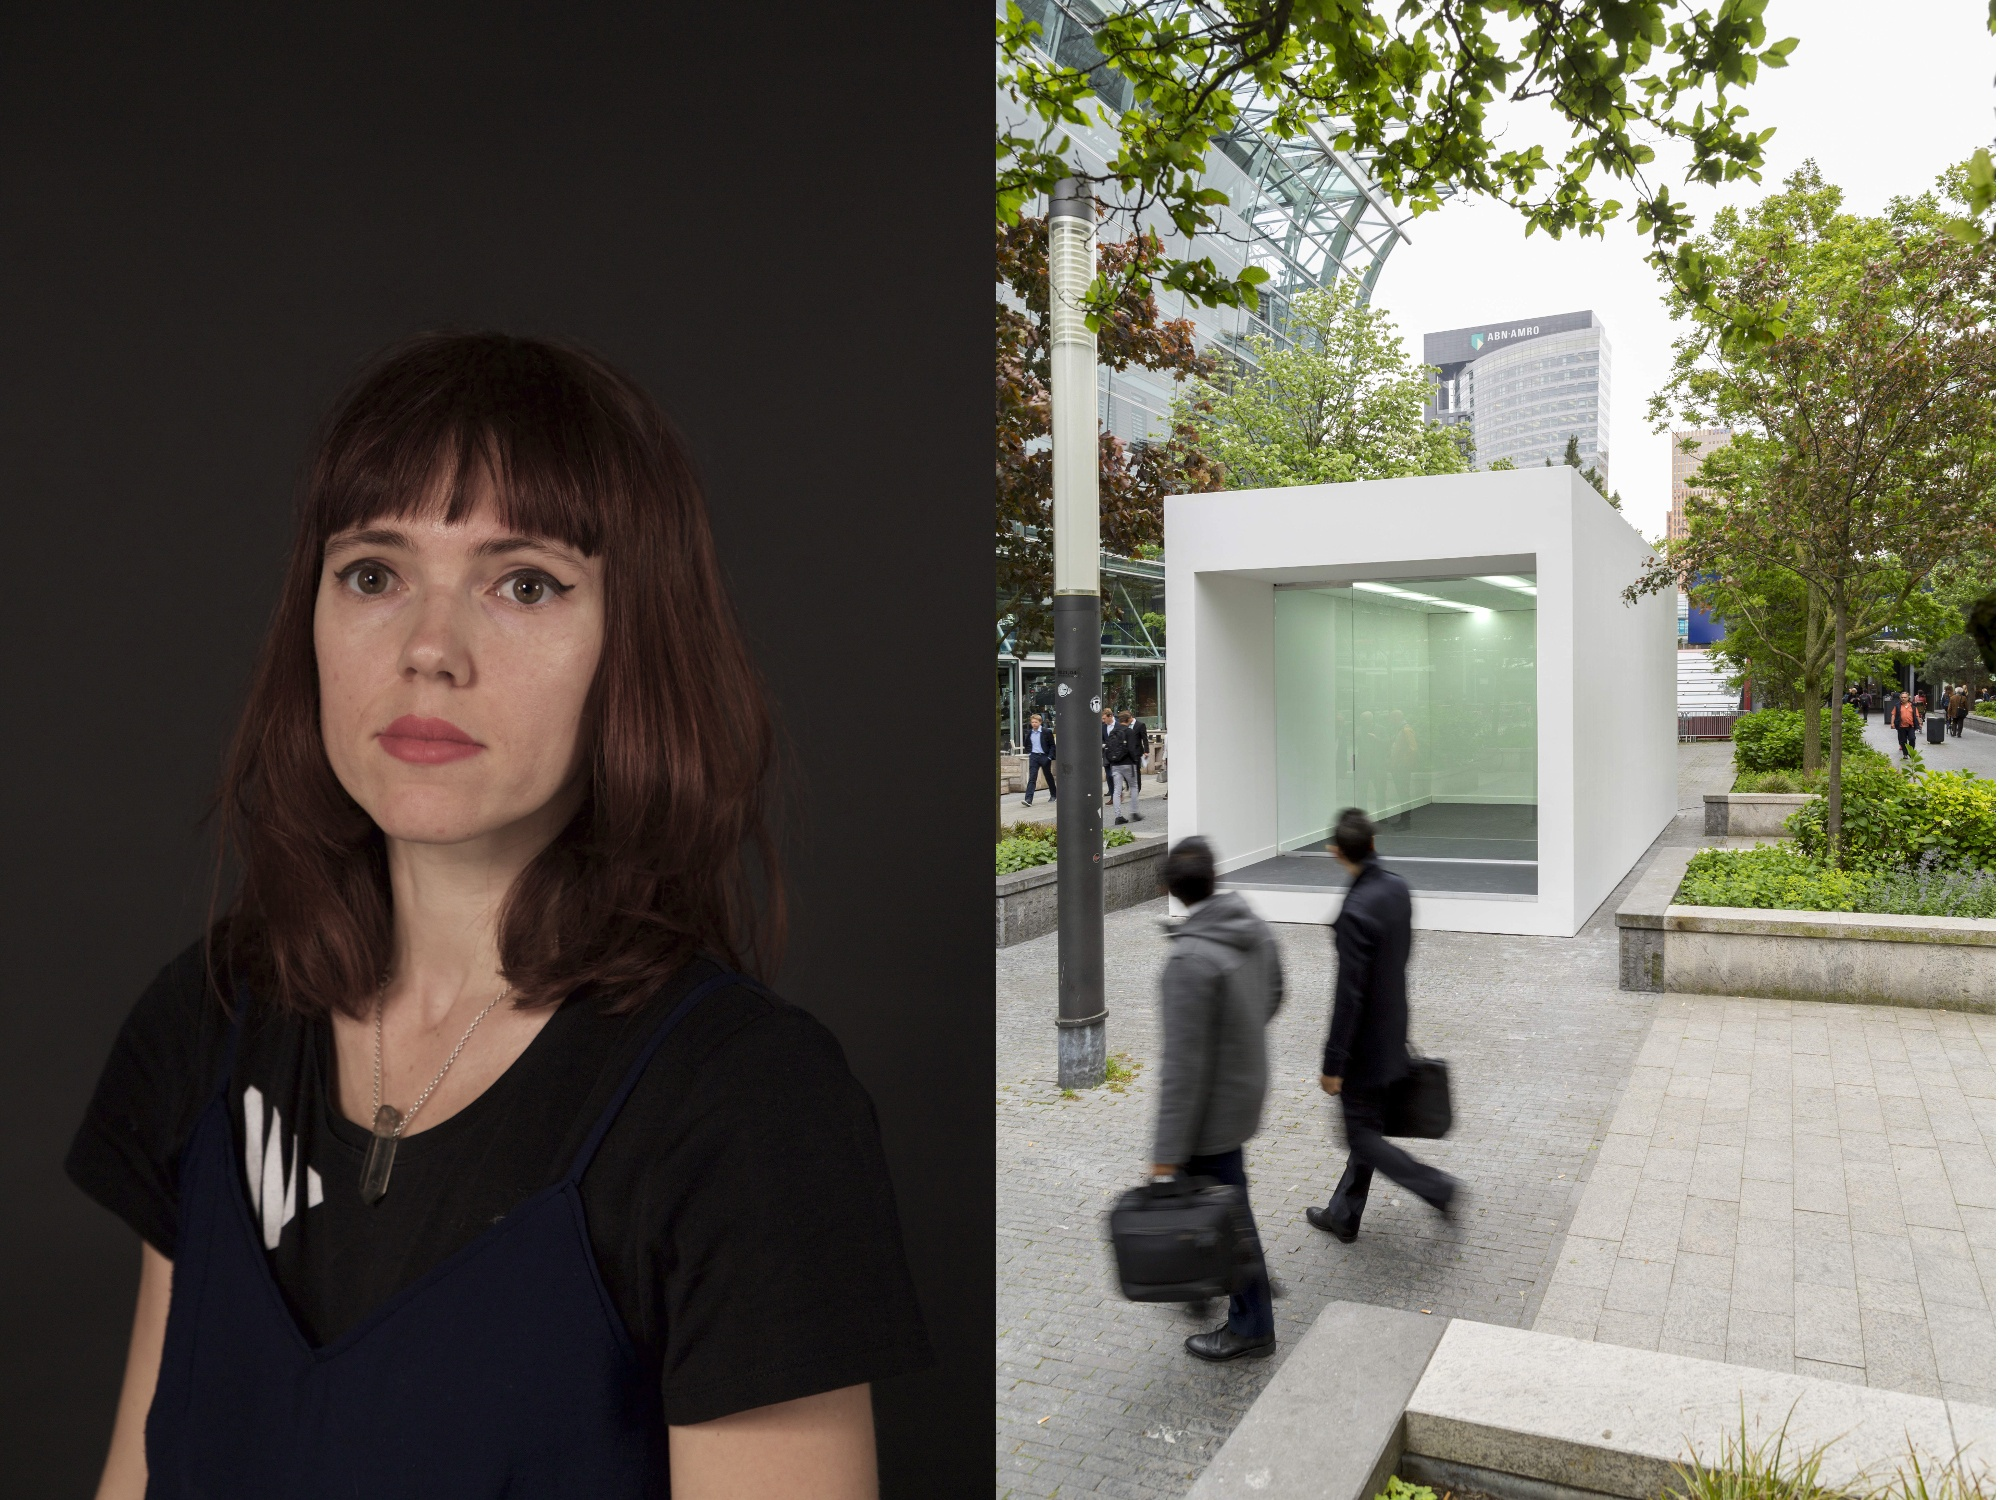 Artist Laura Couto Rosado (left) and Tomo Savic's 'Untitled 2016' (right). Image: CERN